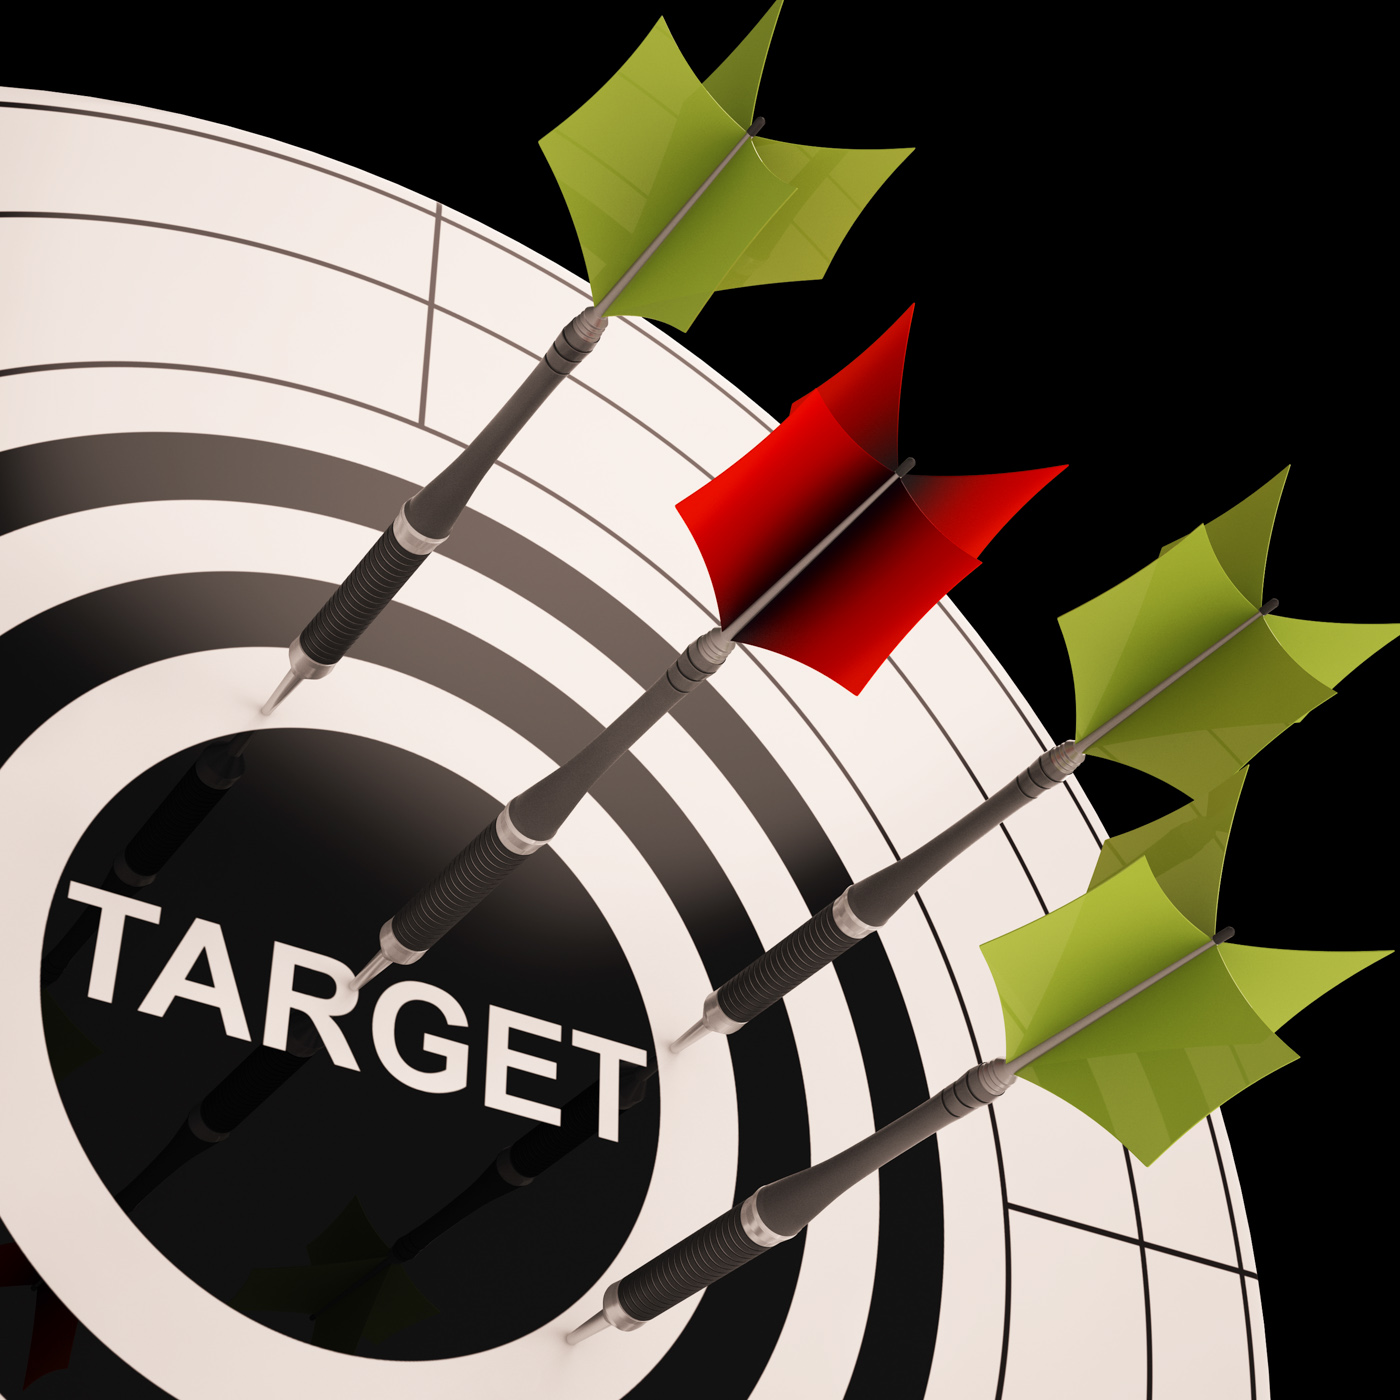 Target On Dartboard Shows Perfect Aiming, Accuracy, Targeting, Target, Successful, HQ Photo